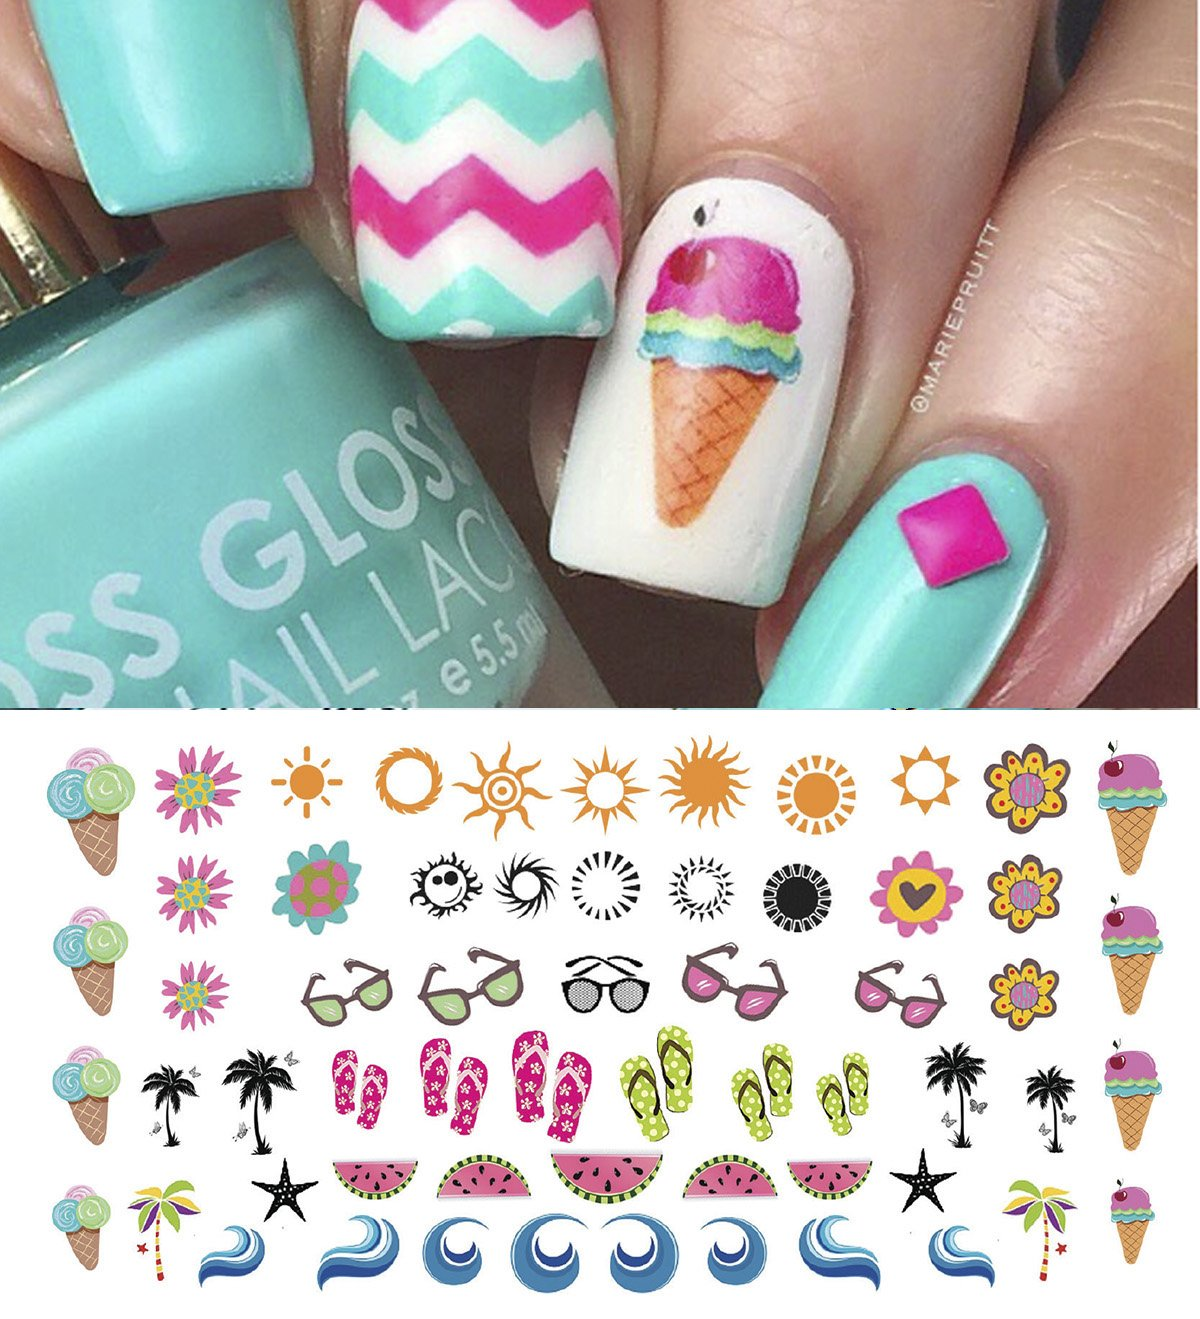 Amazon.com: Spring Fever Nail Art Decals Set #2 - Flowers, Bees ...